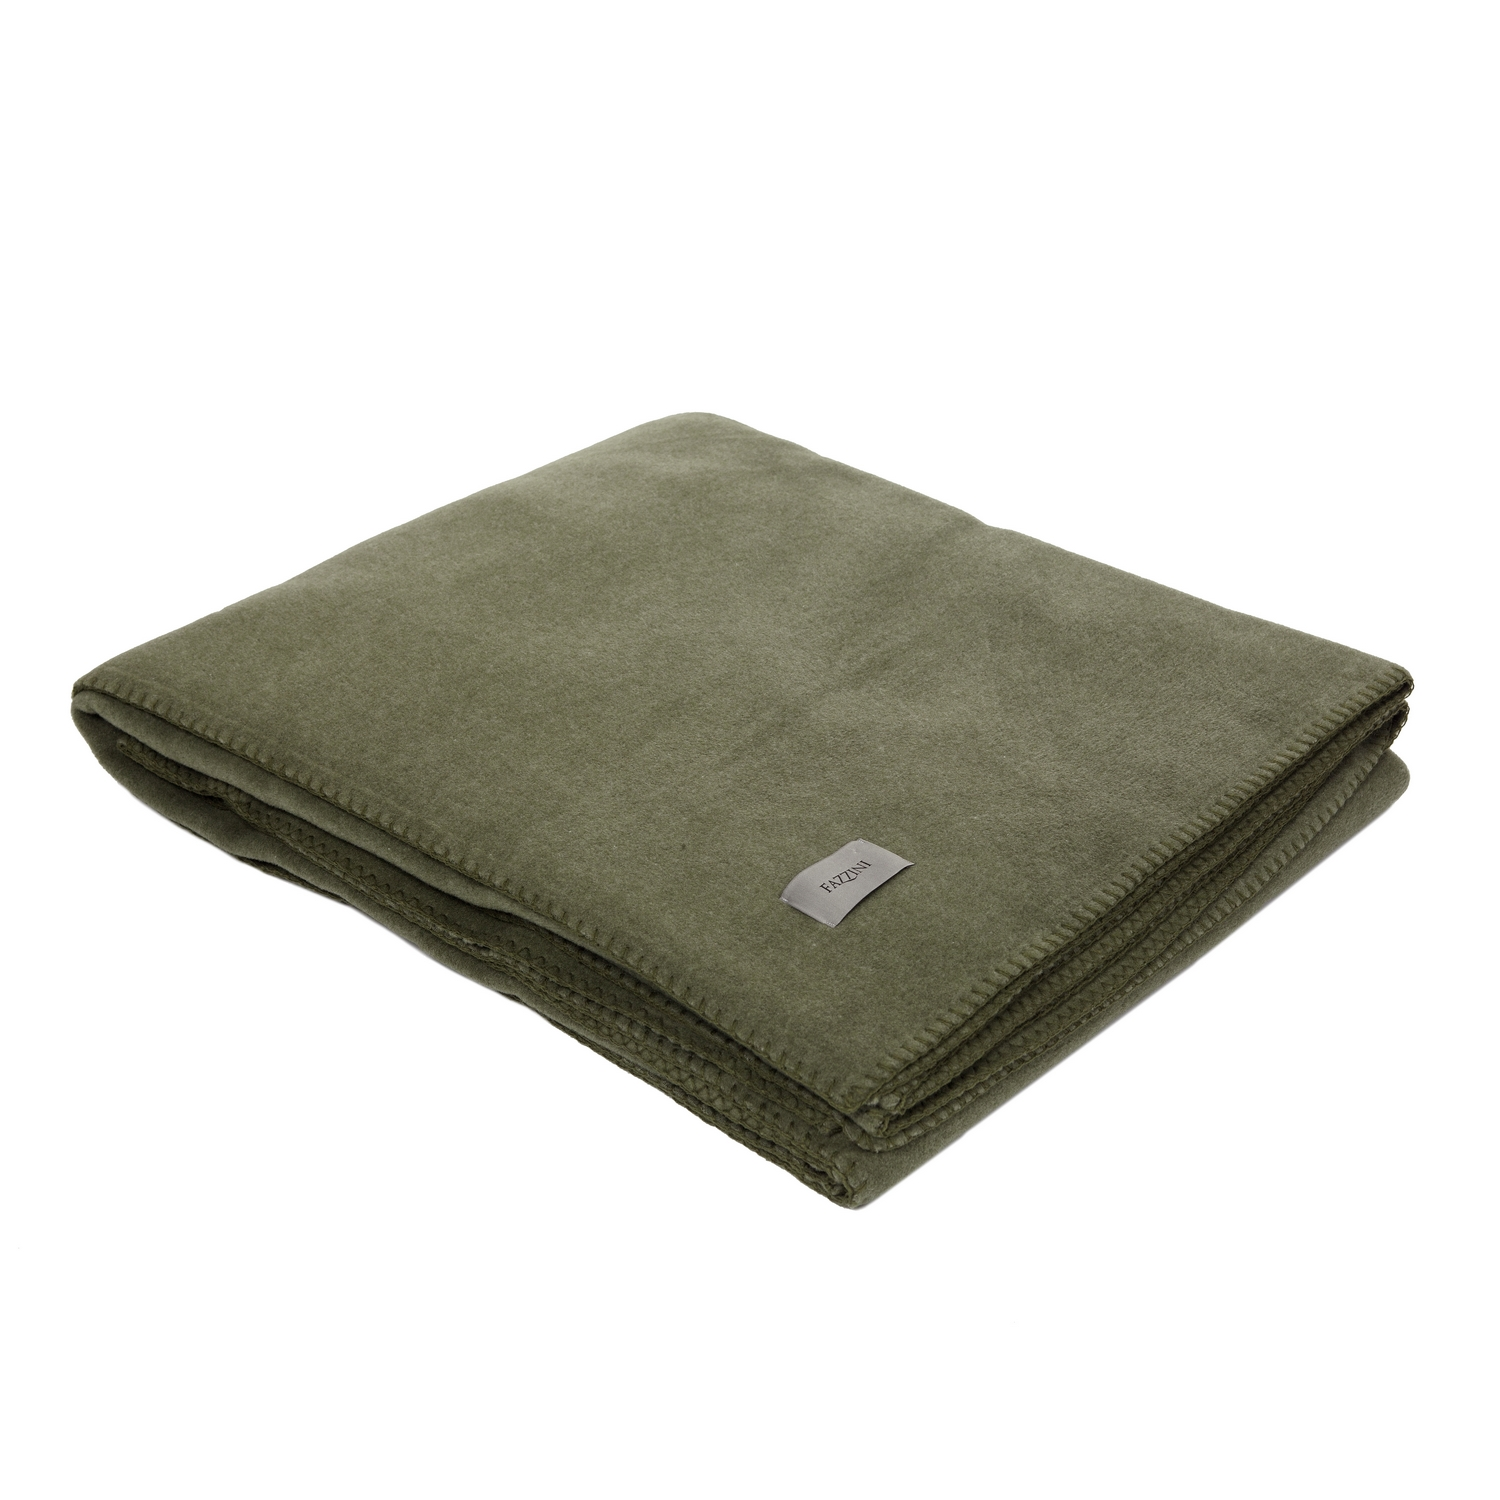 LUCY Blanket -240x210 - GREEN